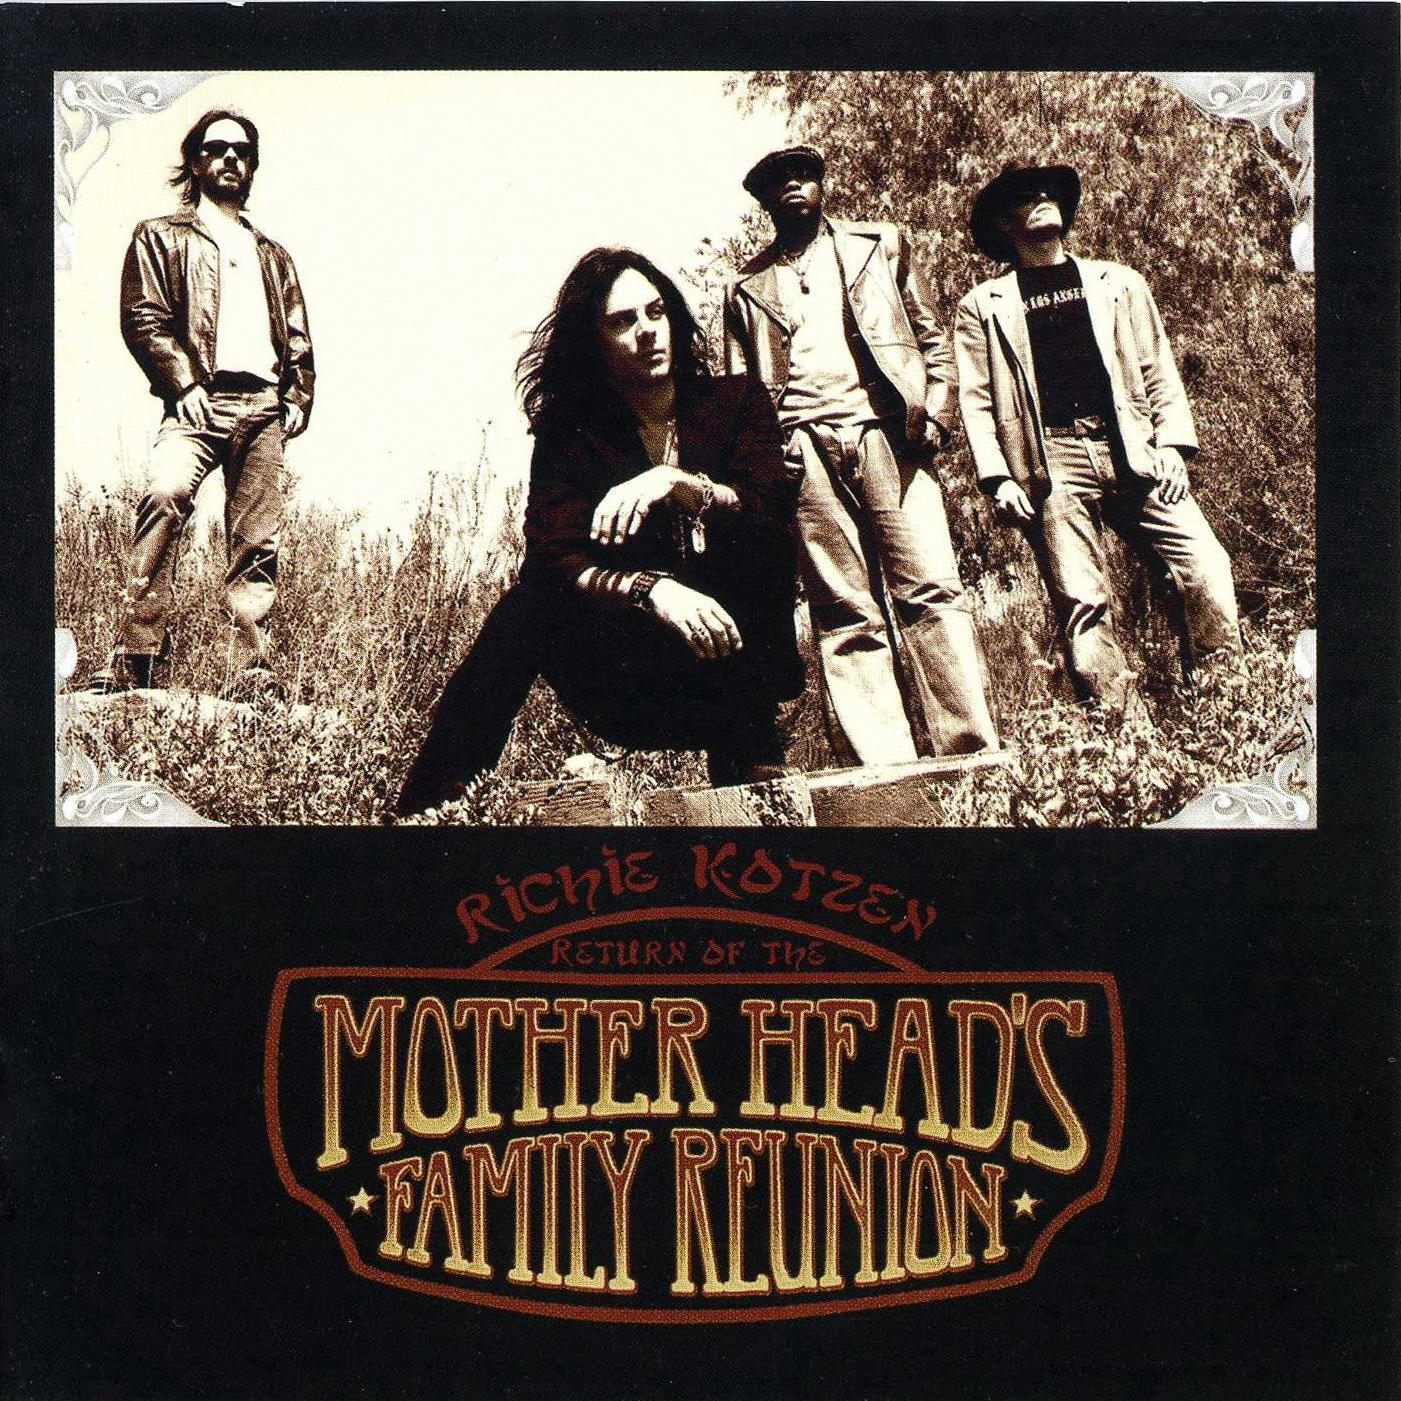 return-of-the-mother-head-s-family-reunion-cover.jpg